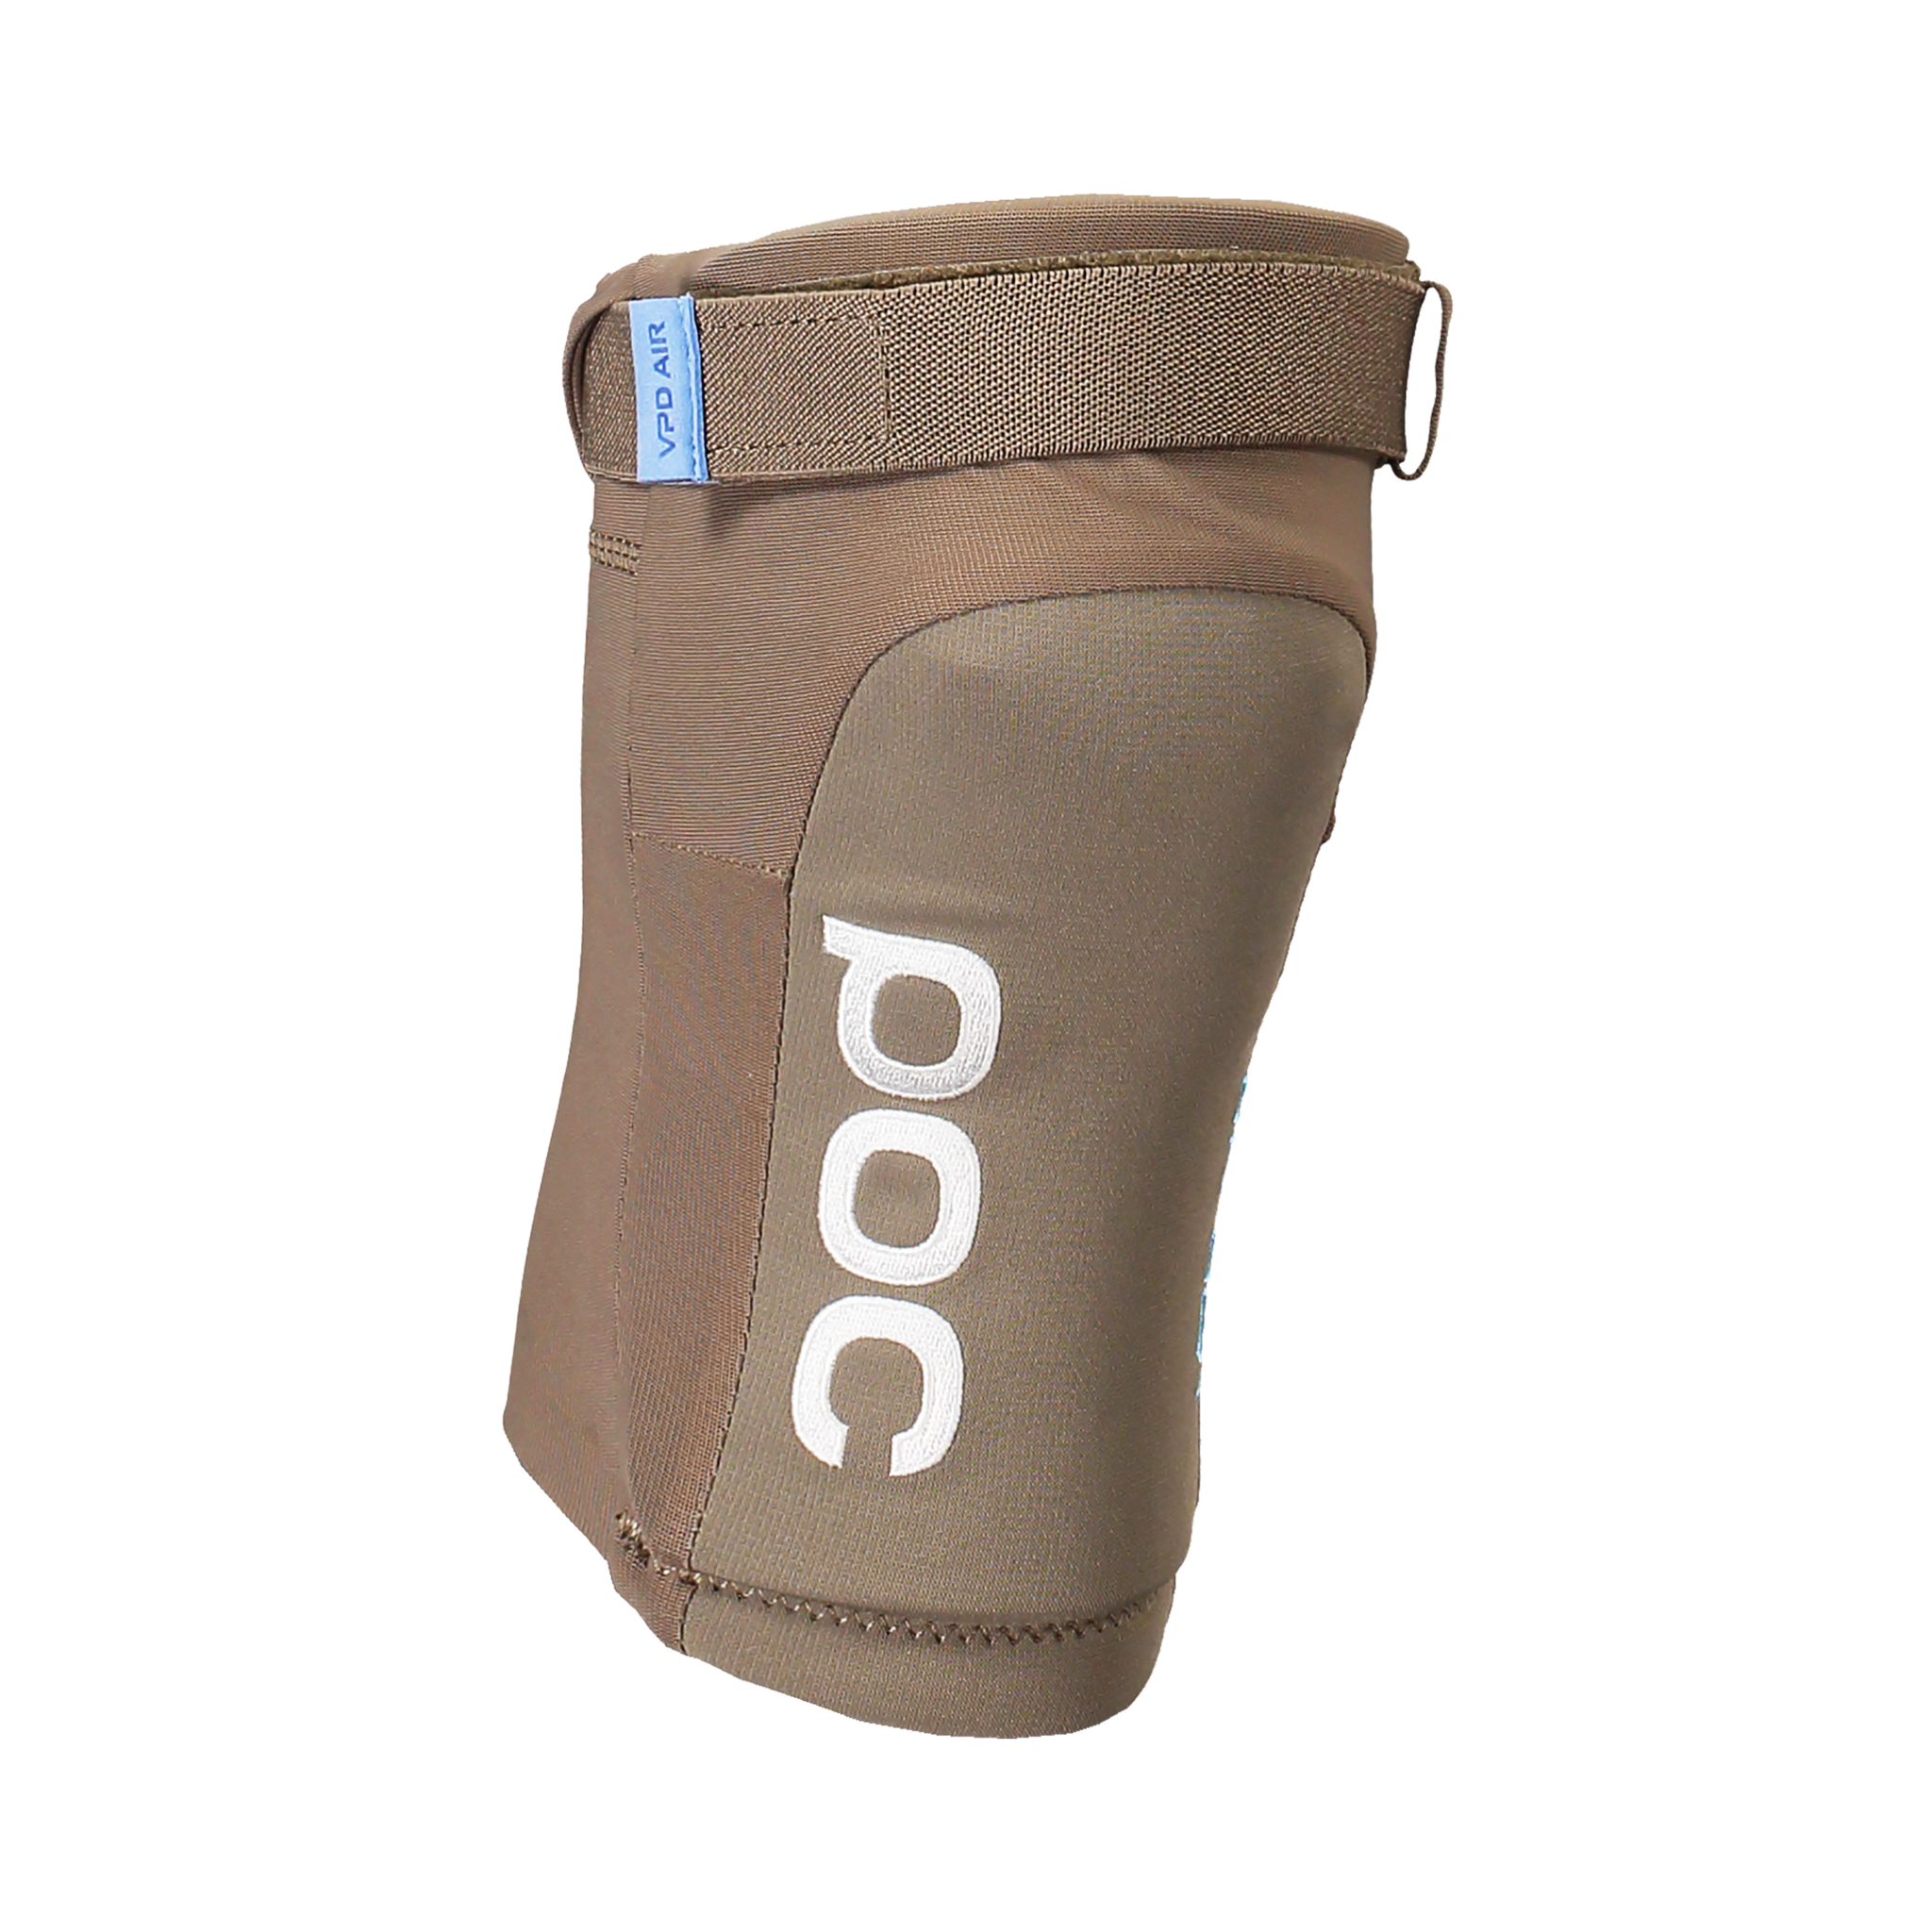 POC Joint VPD Air Knee - Size L - Tan-2